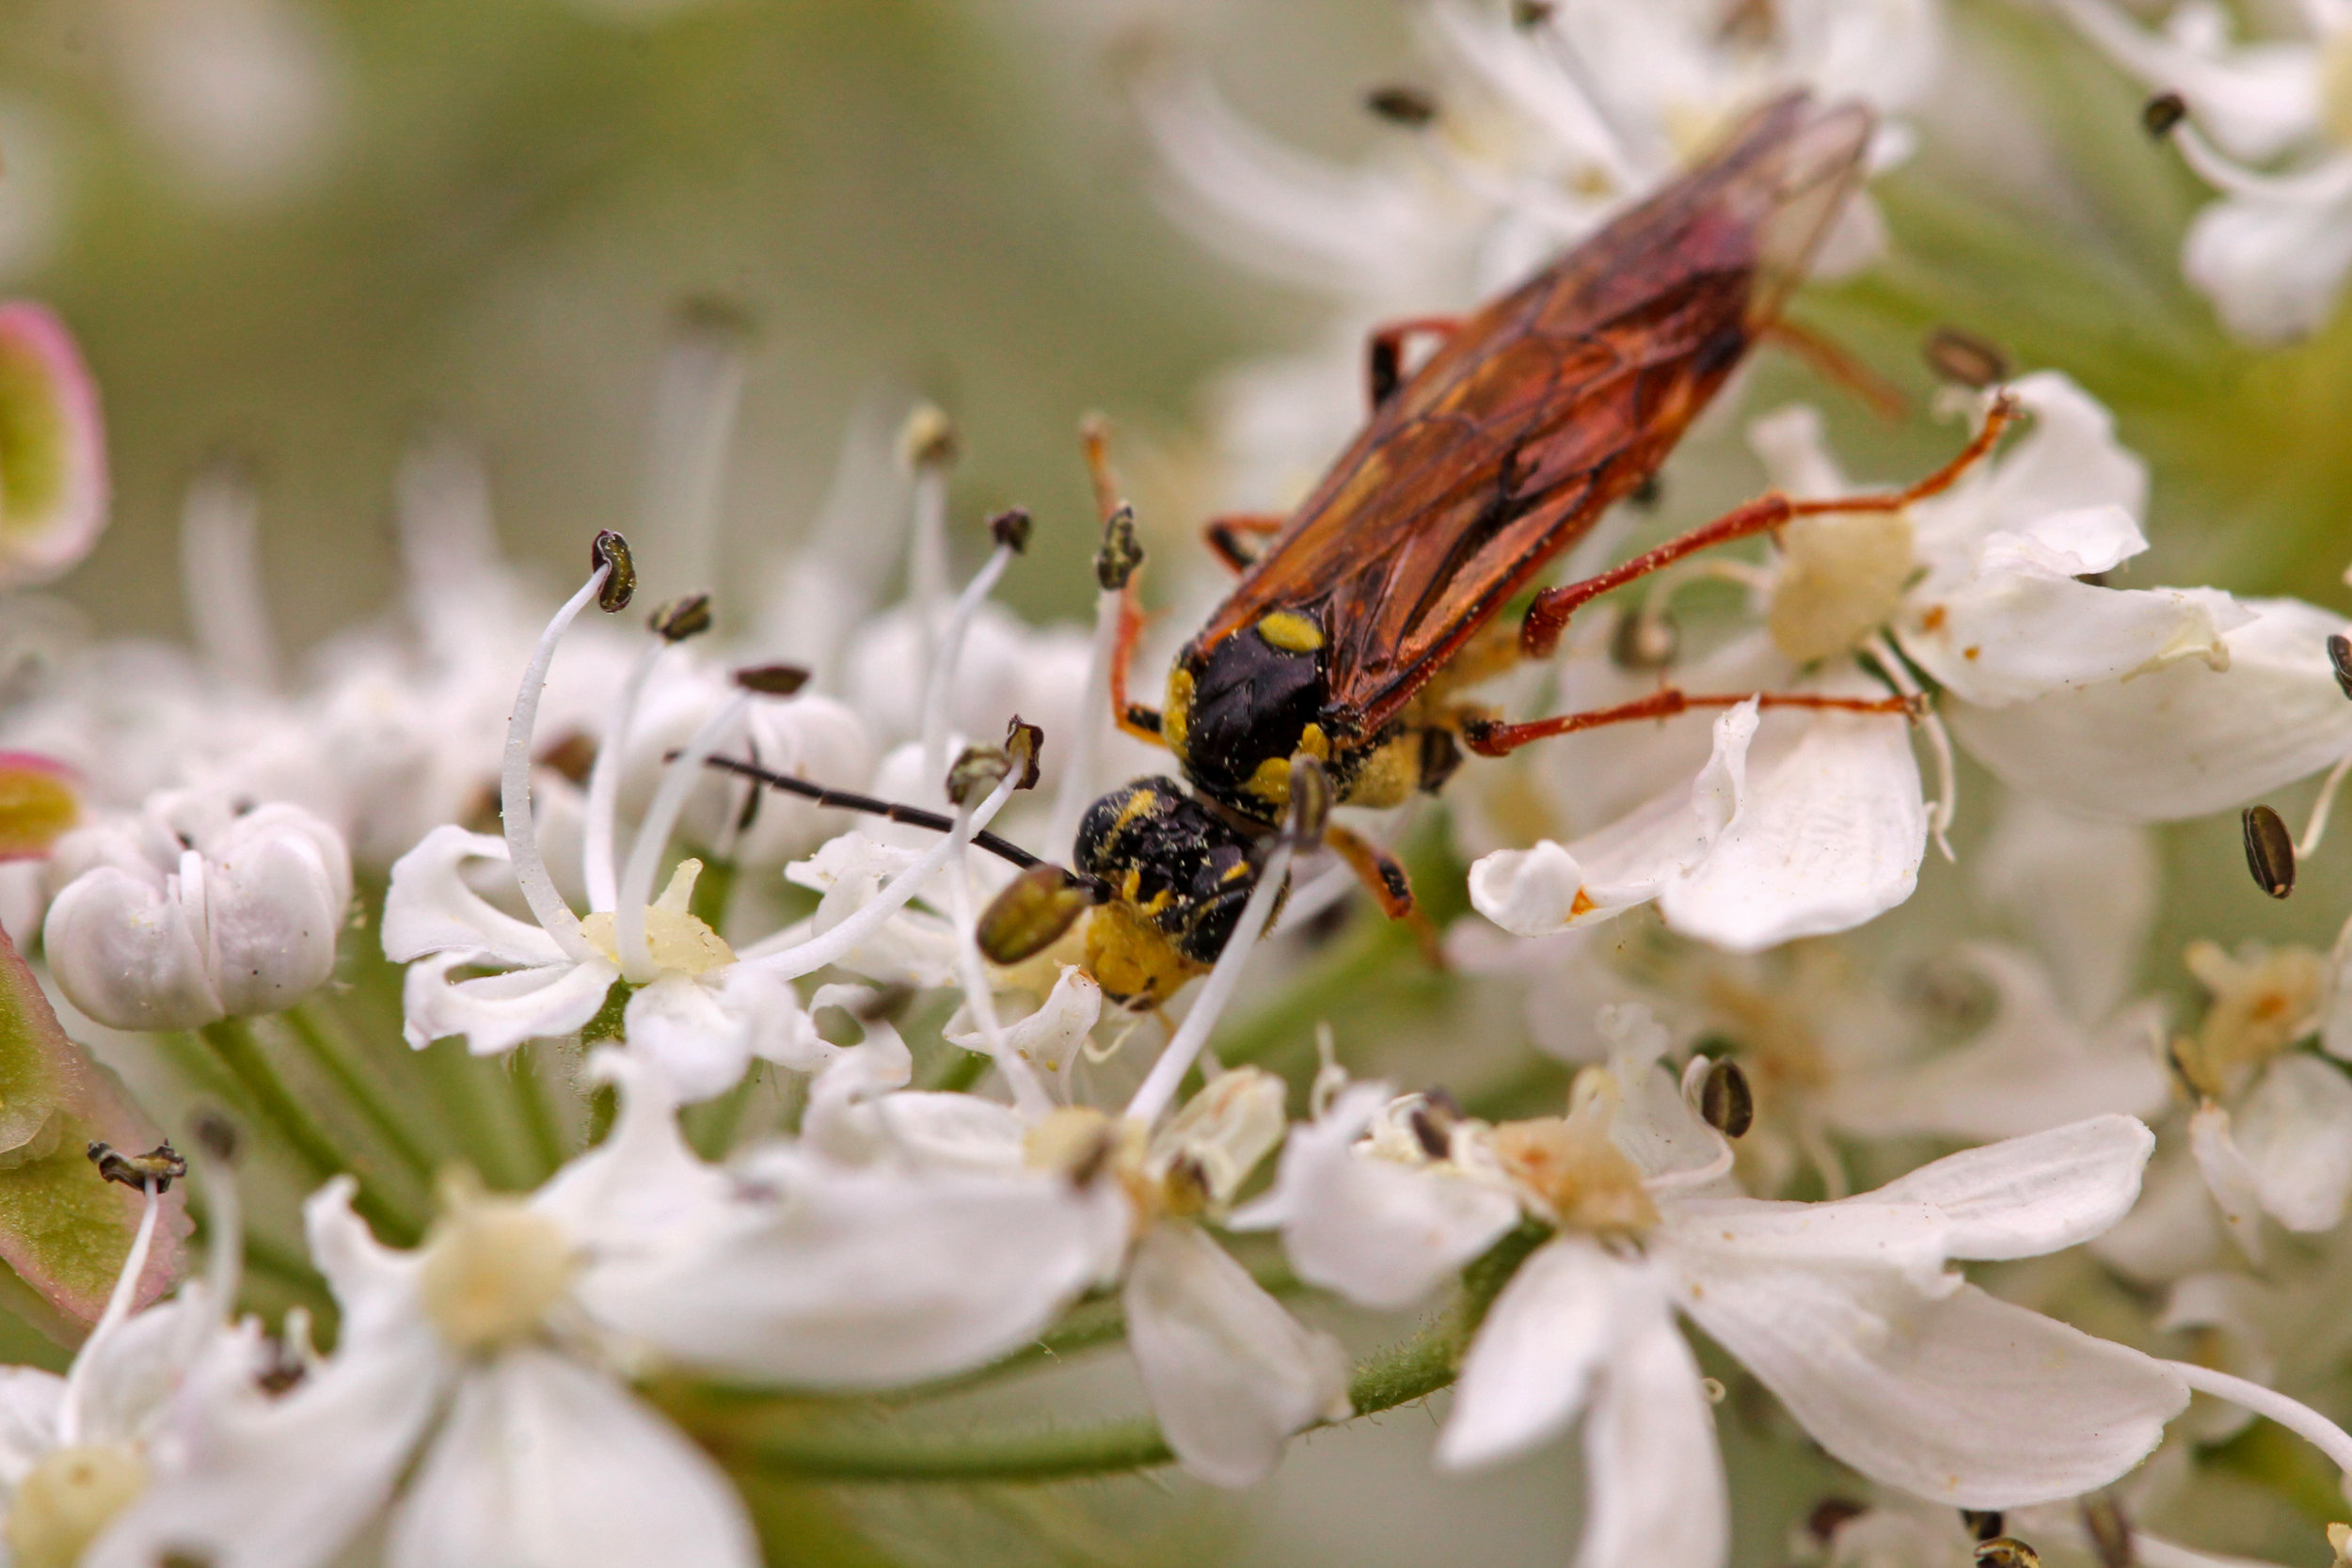 This wasp pollinates as she searches for nectar on cow parsnip in Chilkoot Lake State Recreation Site in Alaska. (© Jared Bernard)